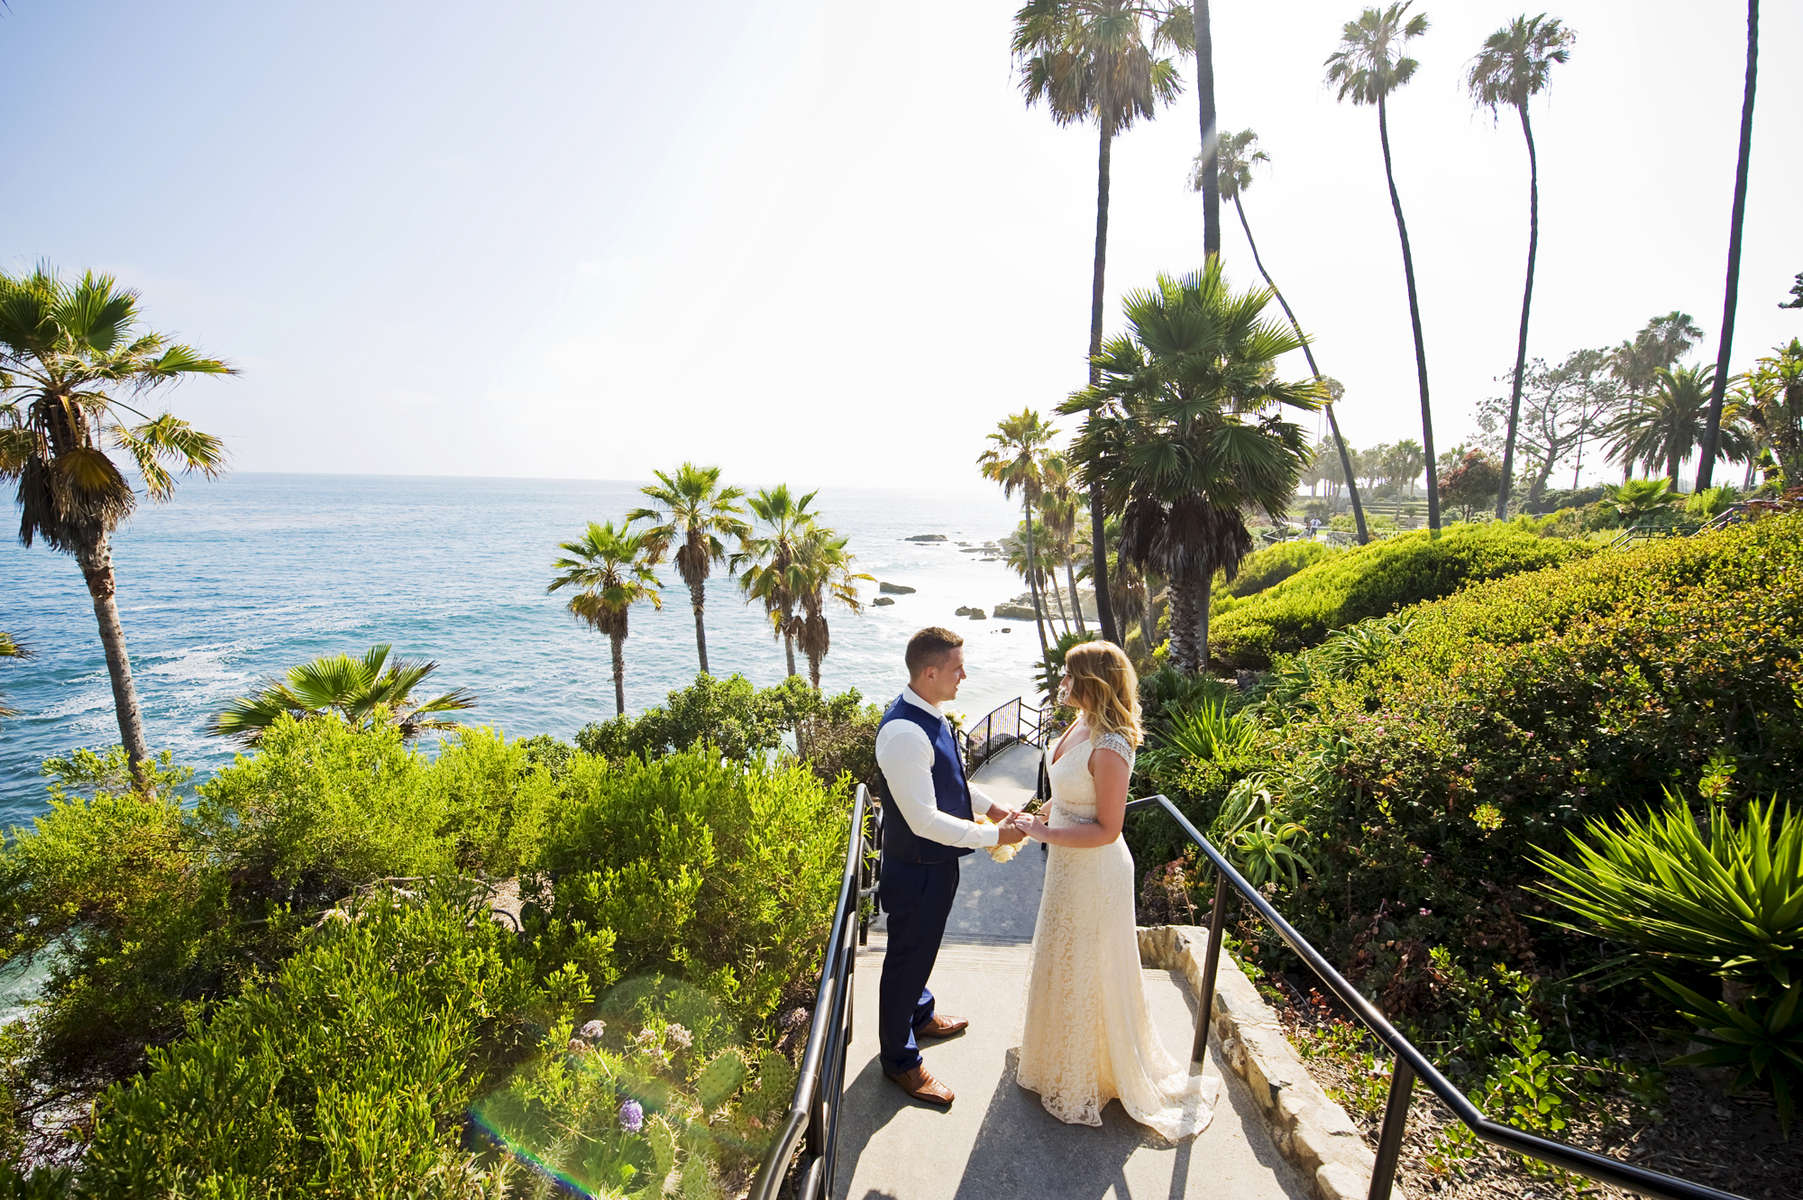 Andrew Moore, 29, from Lisburn, Ireland, and Sarah McKnight, 28, from Lisburn, Ireland decided to have an intimate ceremony across the world for a destination wedding under the Laguna Beach Gazebo in Laguna Beach, Calif., on Wednesday, June 29, 2016.  Moore and McKnight met at a night club eight years ago and look forward to spending the rest of their lives together.